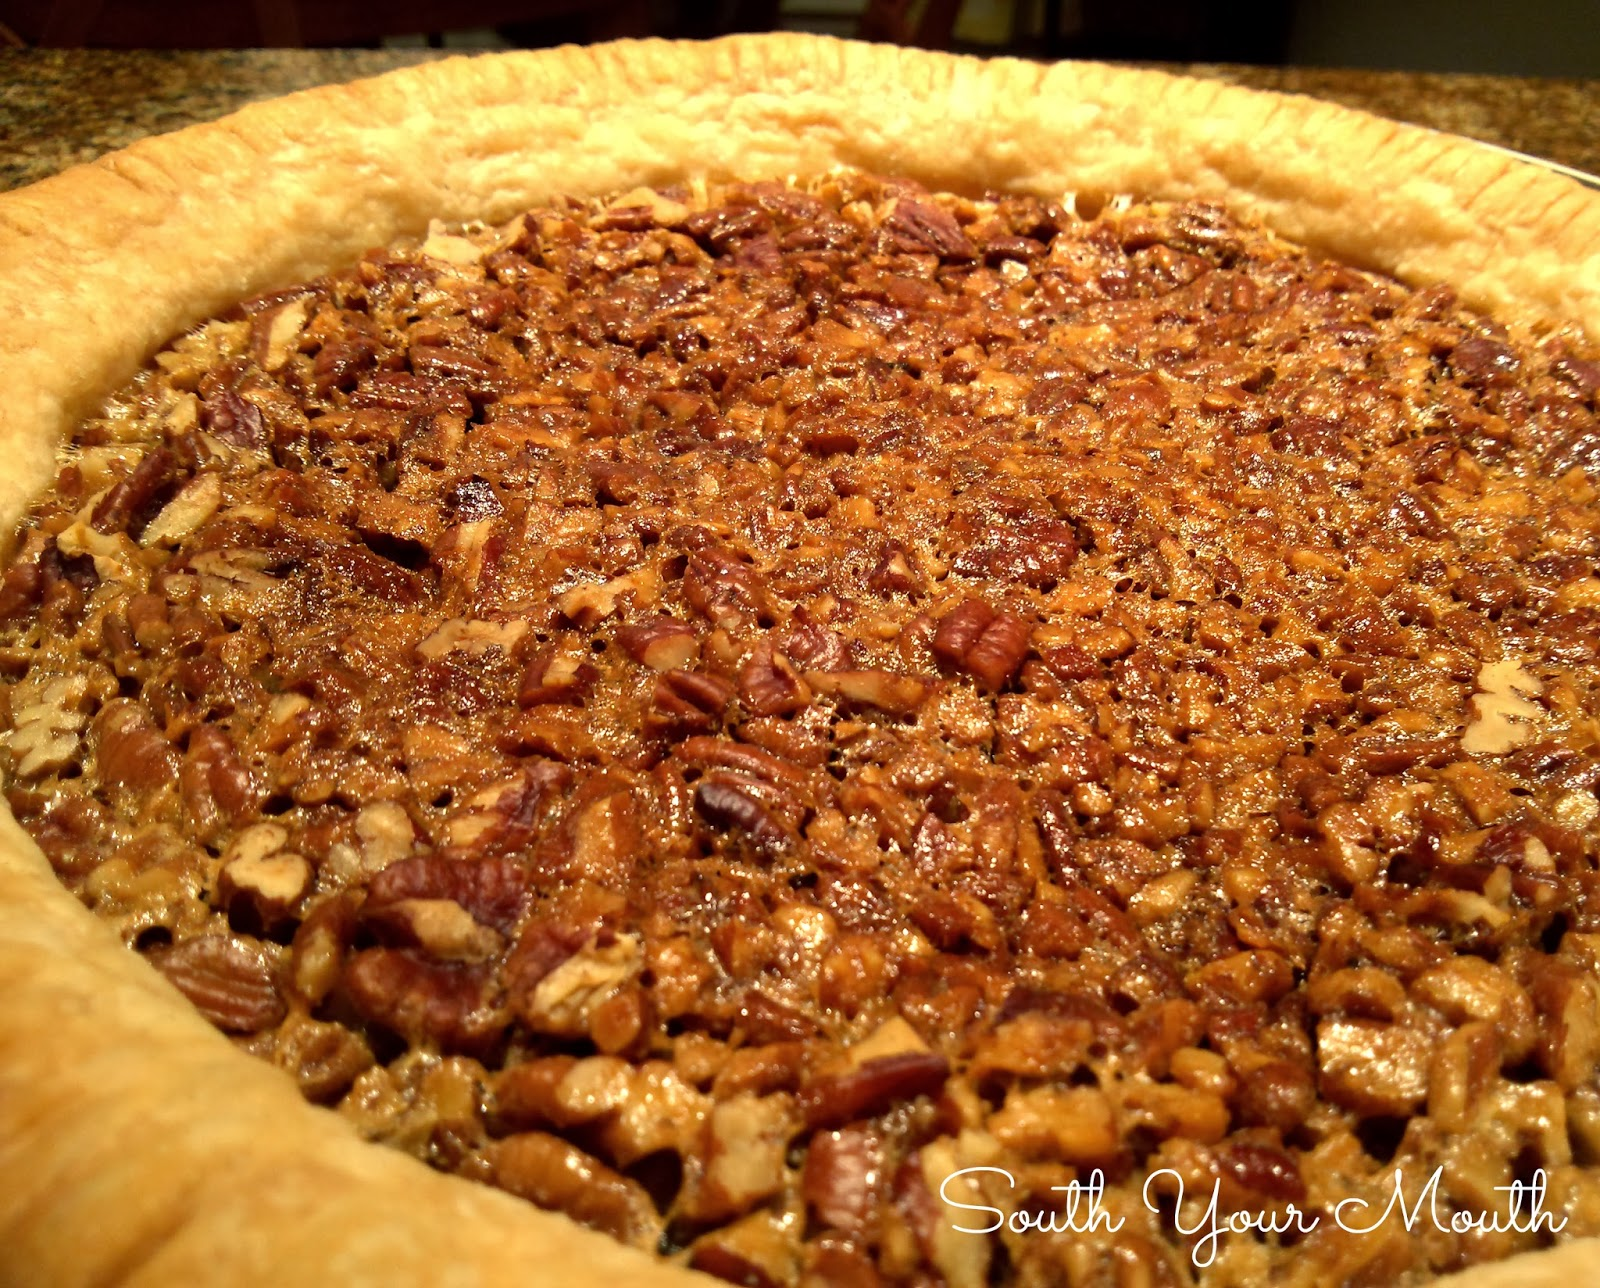 Southern Pecan Pie Recipe Images & Pictures - Becuo